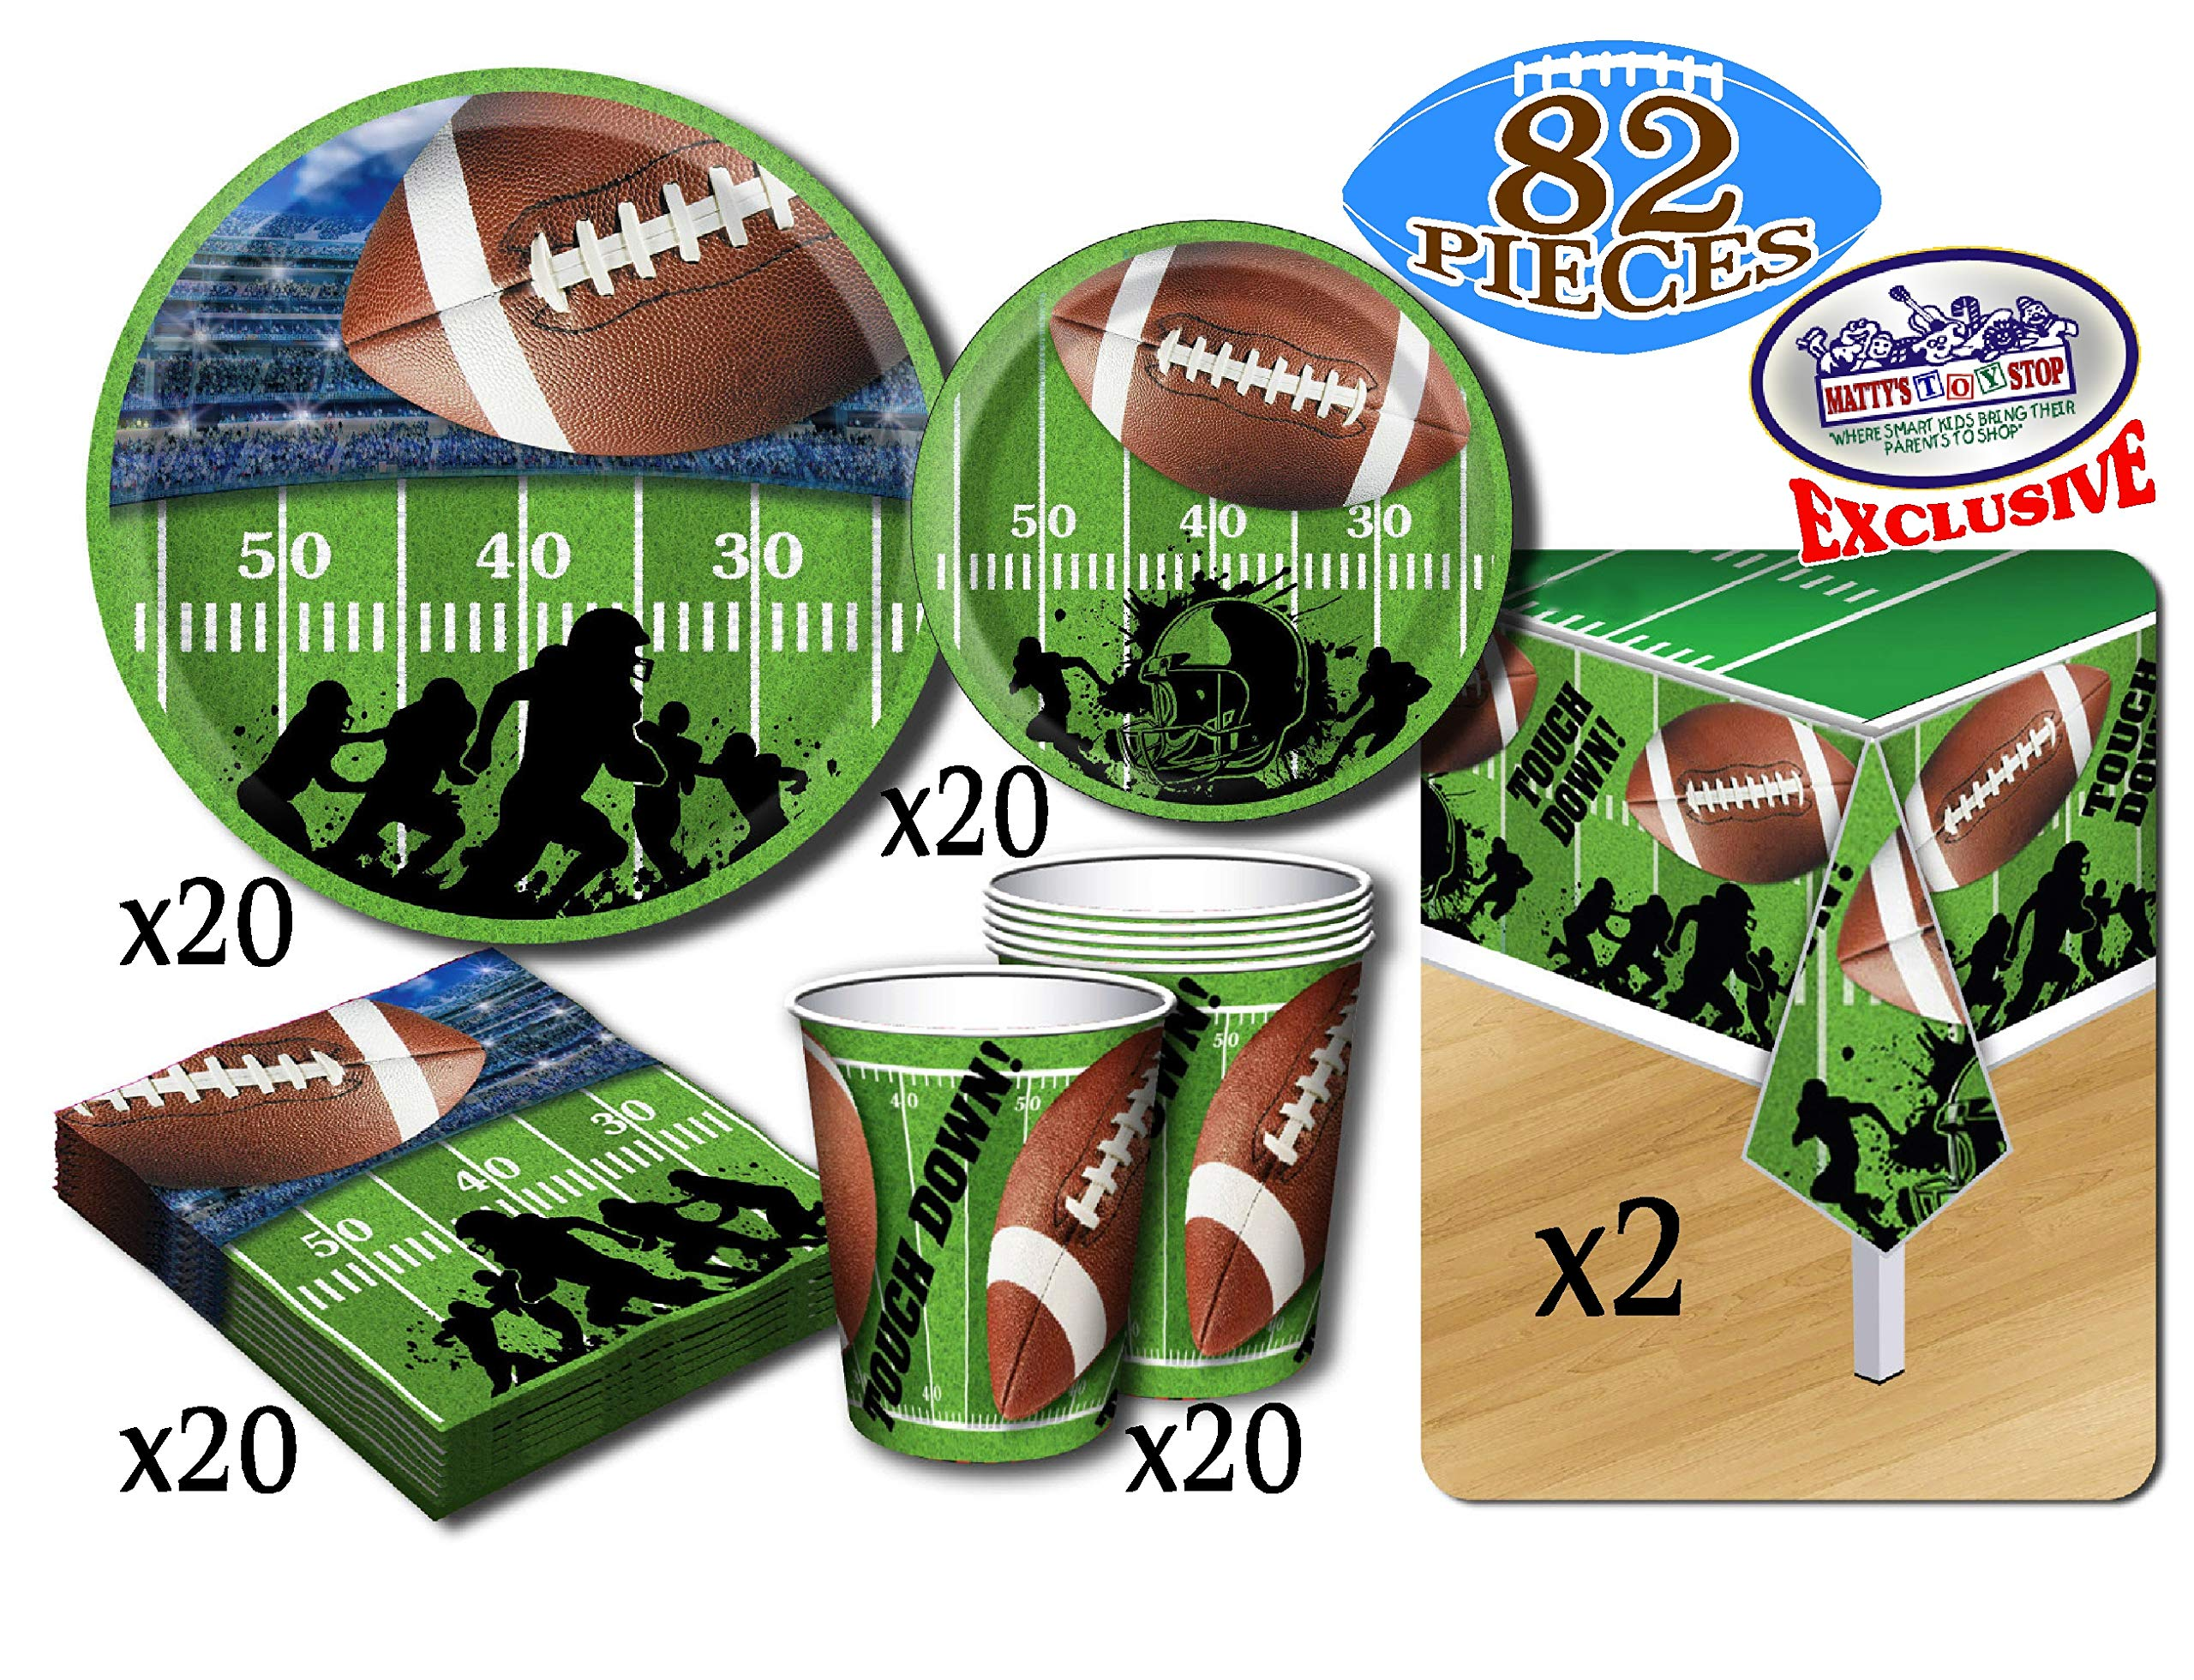 Deluxe Football Theme Party Supplies Pack for 20 People, Includes 20 Large Plates, 20 Small Plates, 20 Napkins, 20 Cups & 2 Table Covers - Perfect for Gameday or Birthday (82 Pieces Total) by Matty's Toy Stop